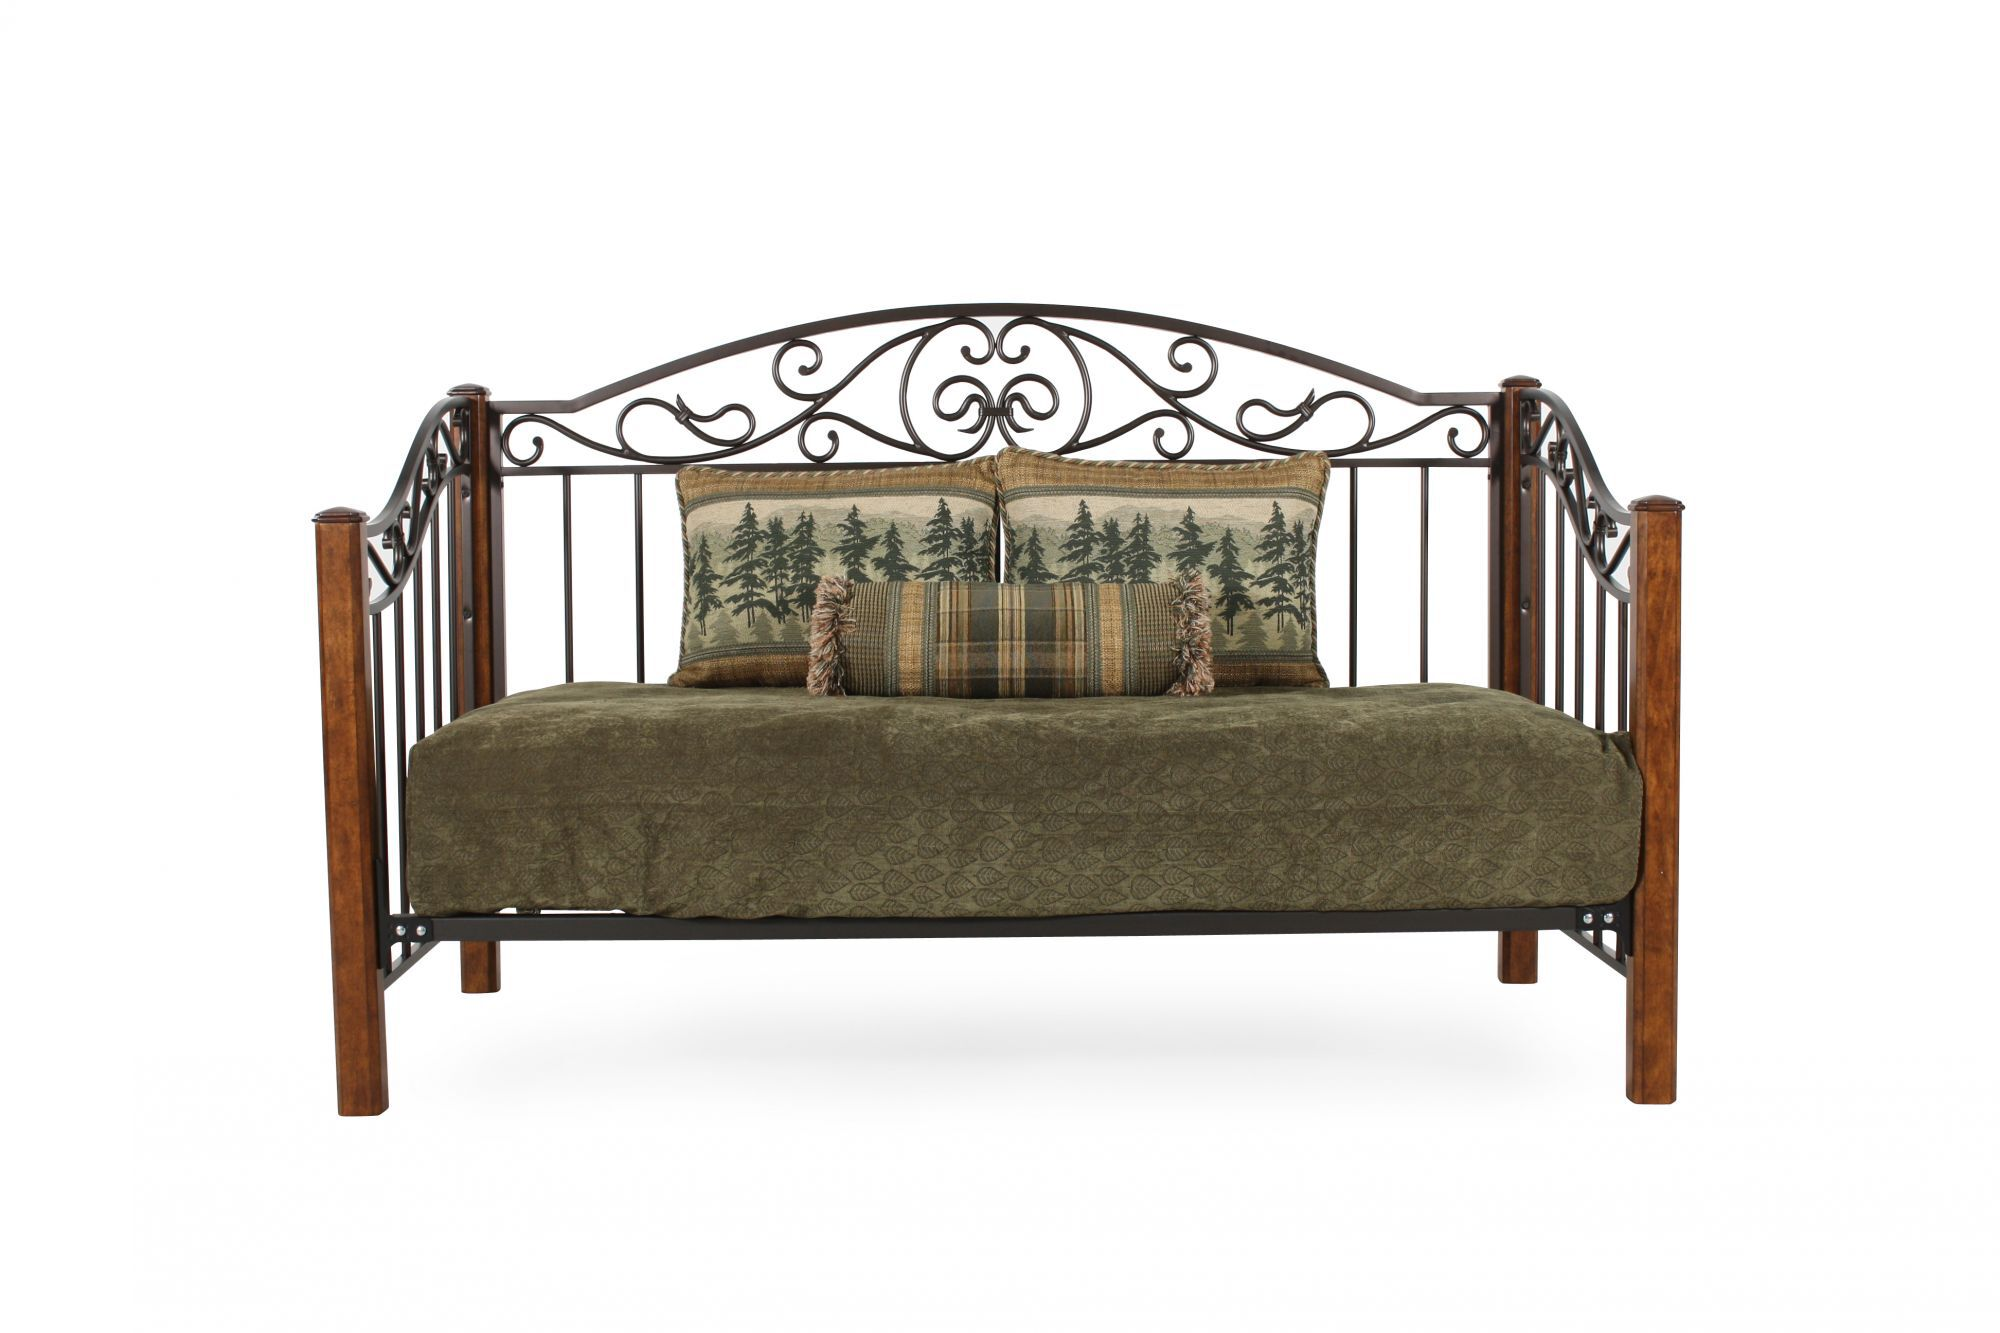 Images Country Wrought Iron Back Daybed Country Wrought Iron Back Daybed